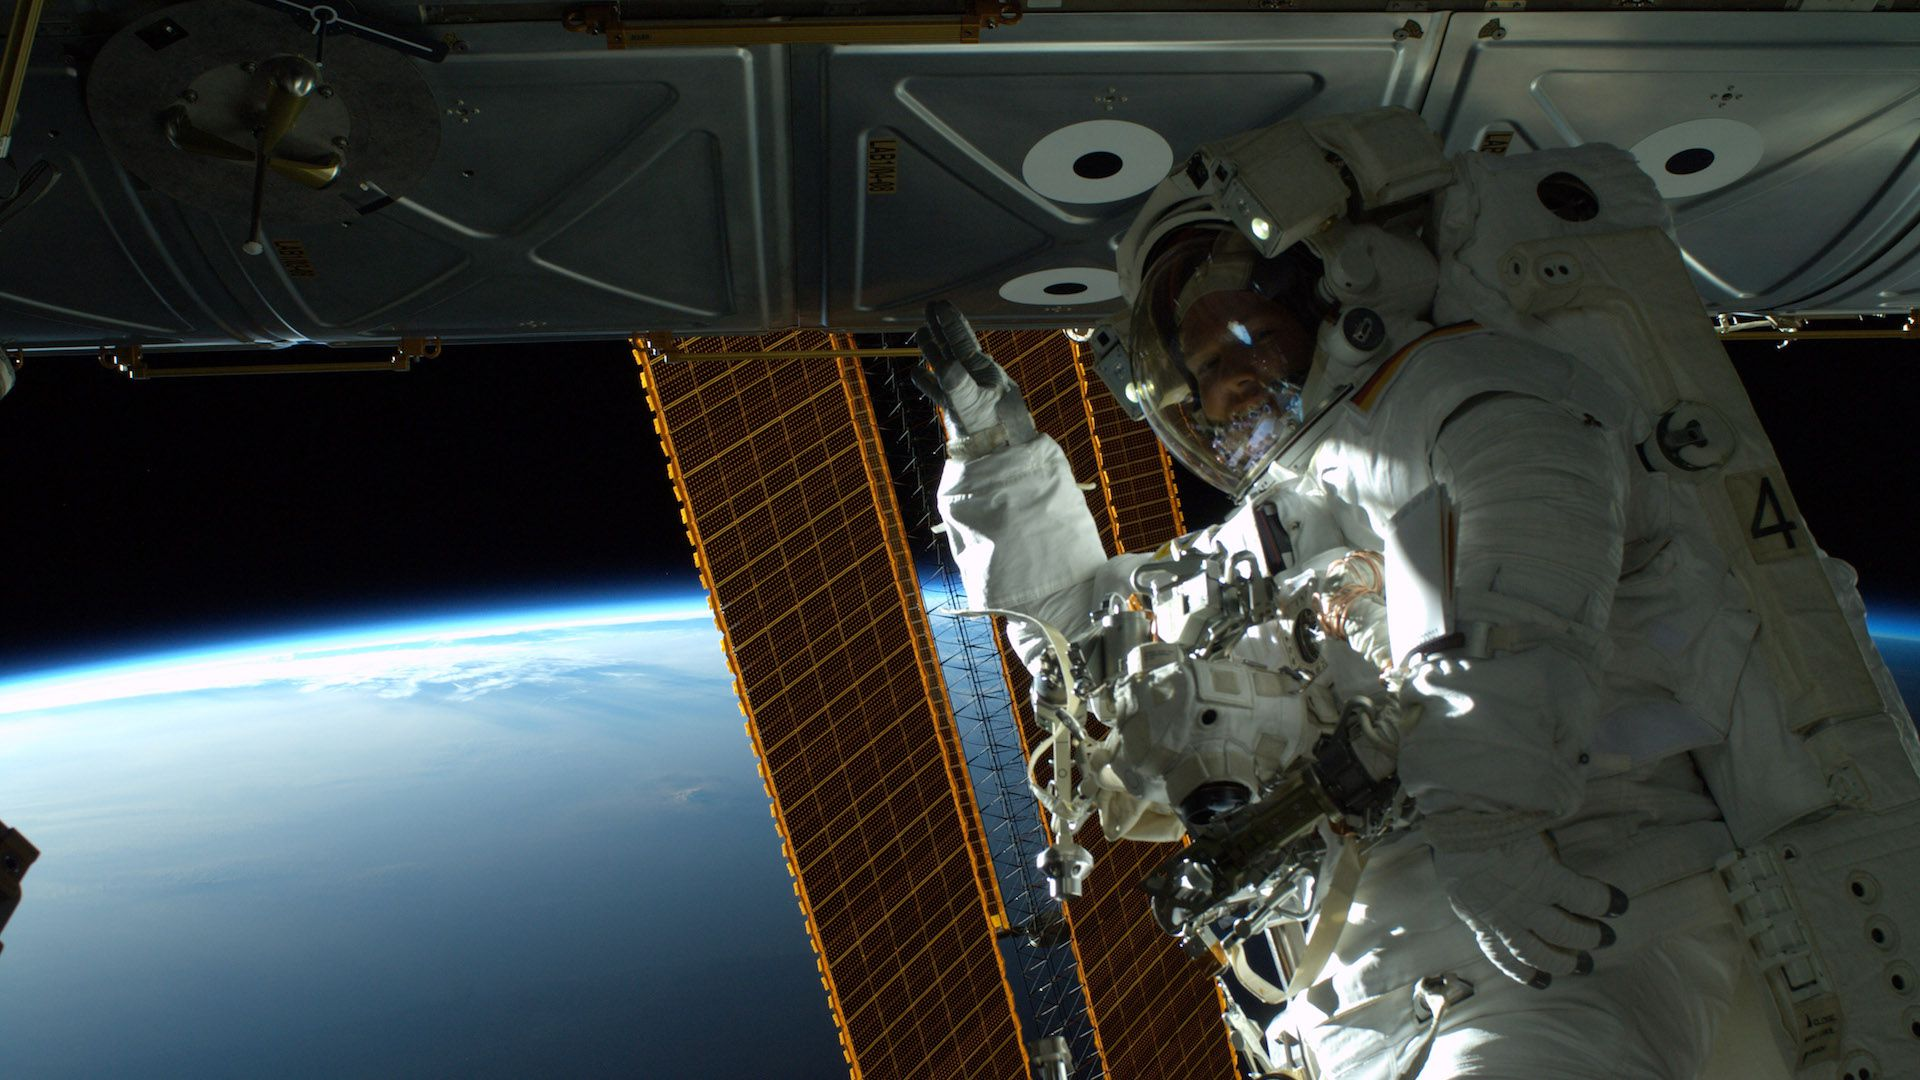 Astronaut conducting a spacewalk outside the space station.